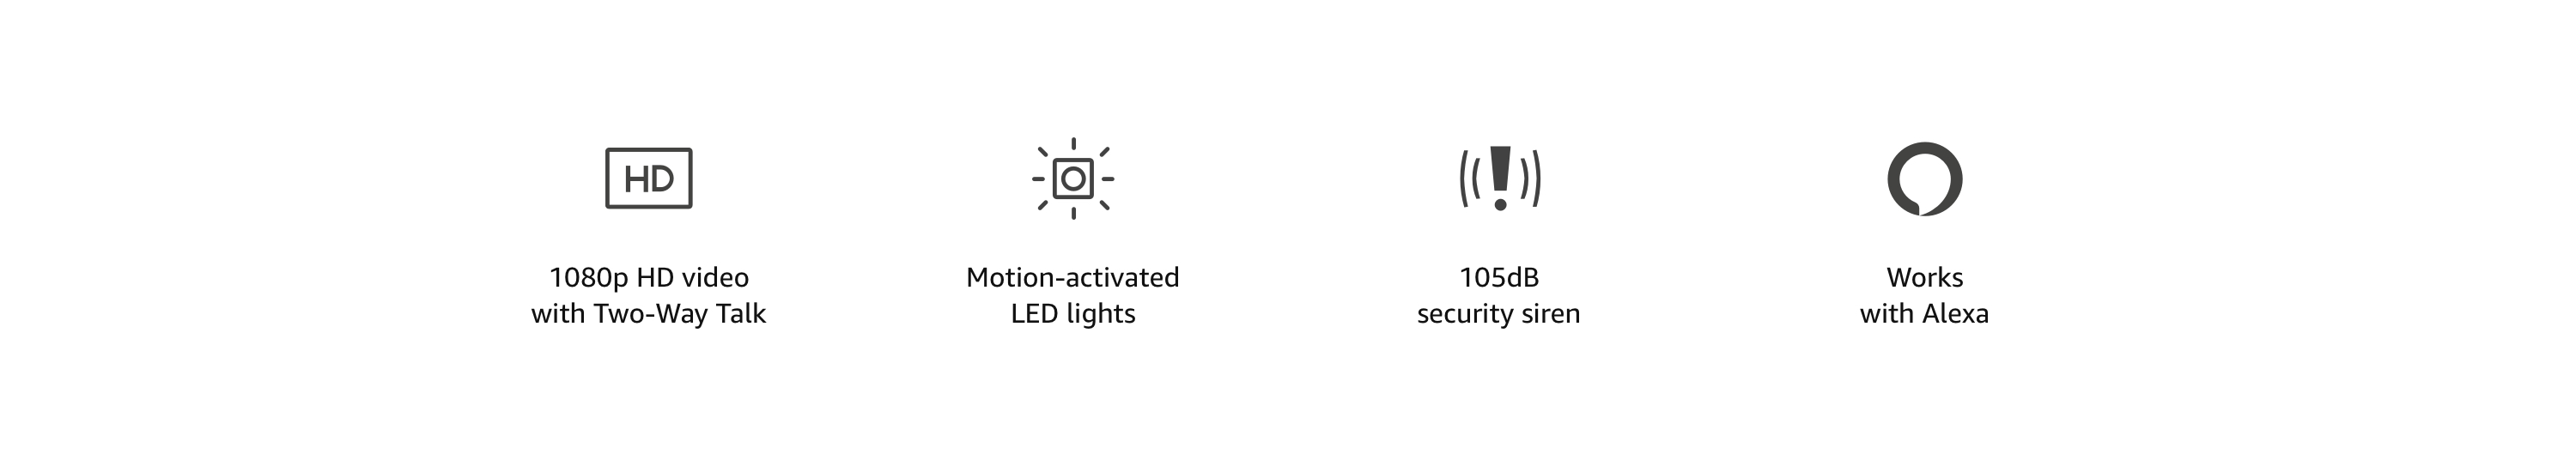 1080p HD video with Two-Way Talk, Motion-activated LED lights, 105dB security siren, and Works with Alexa